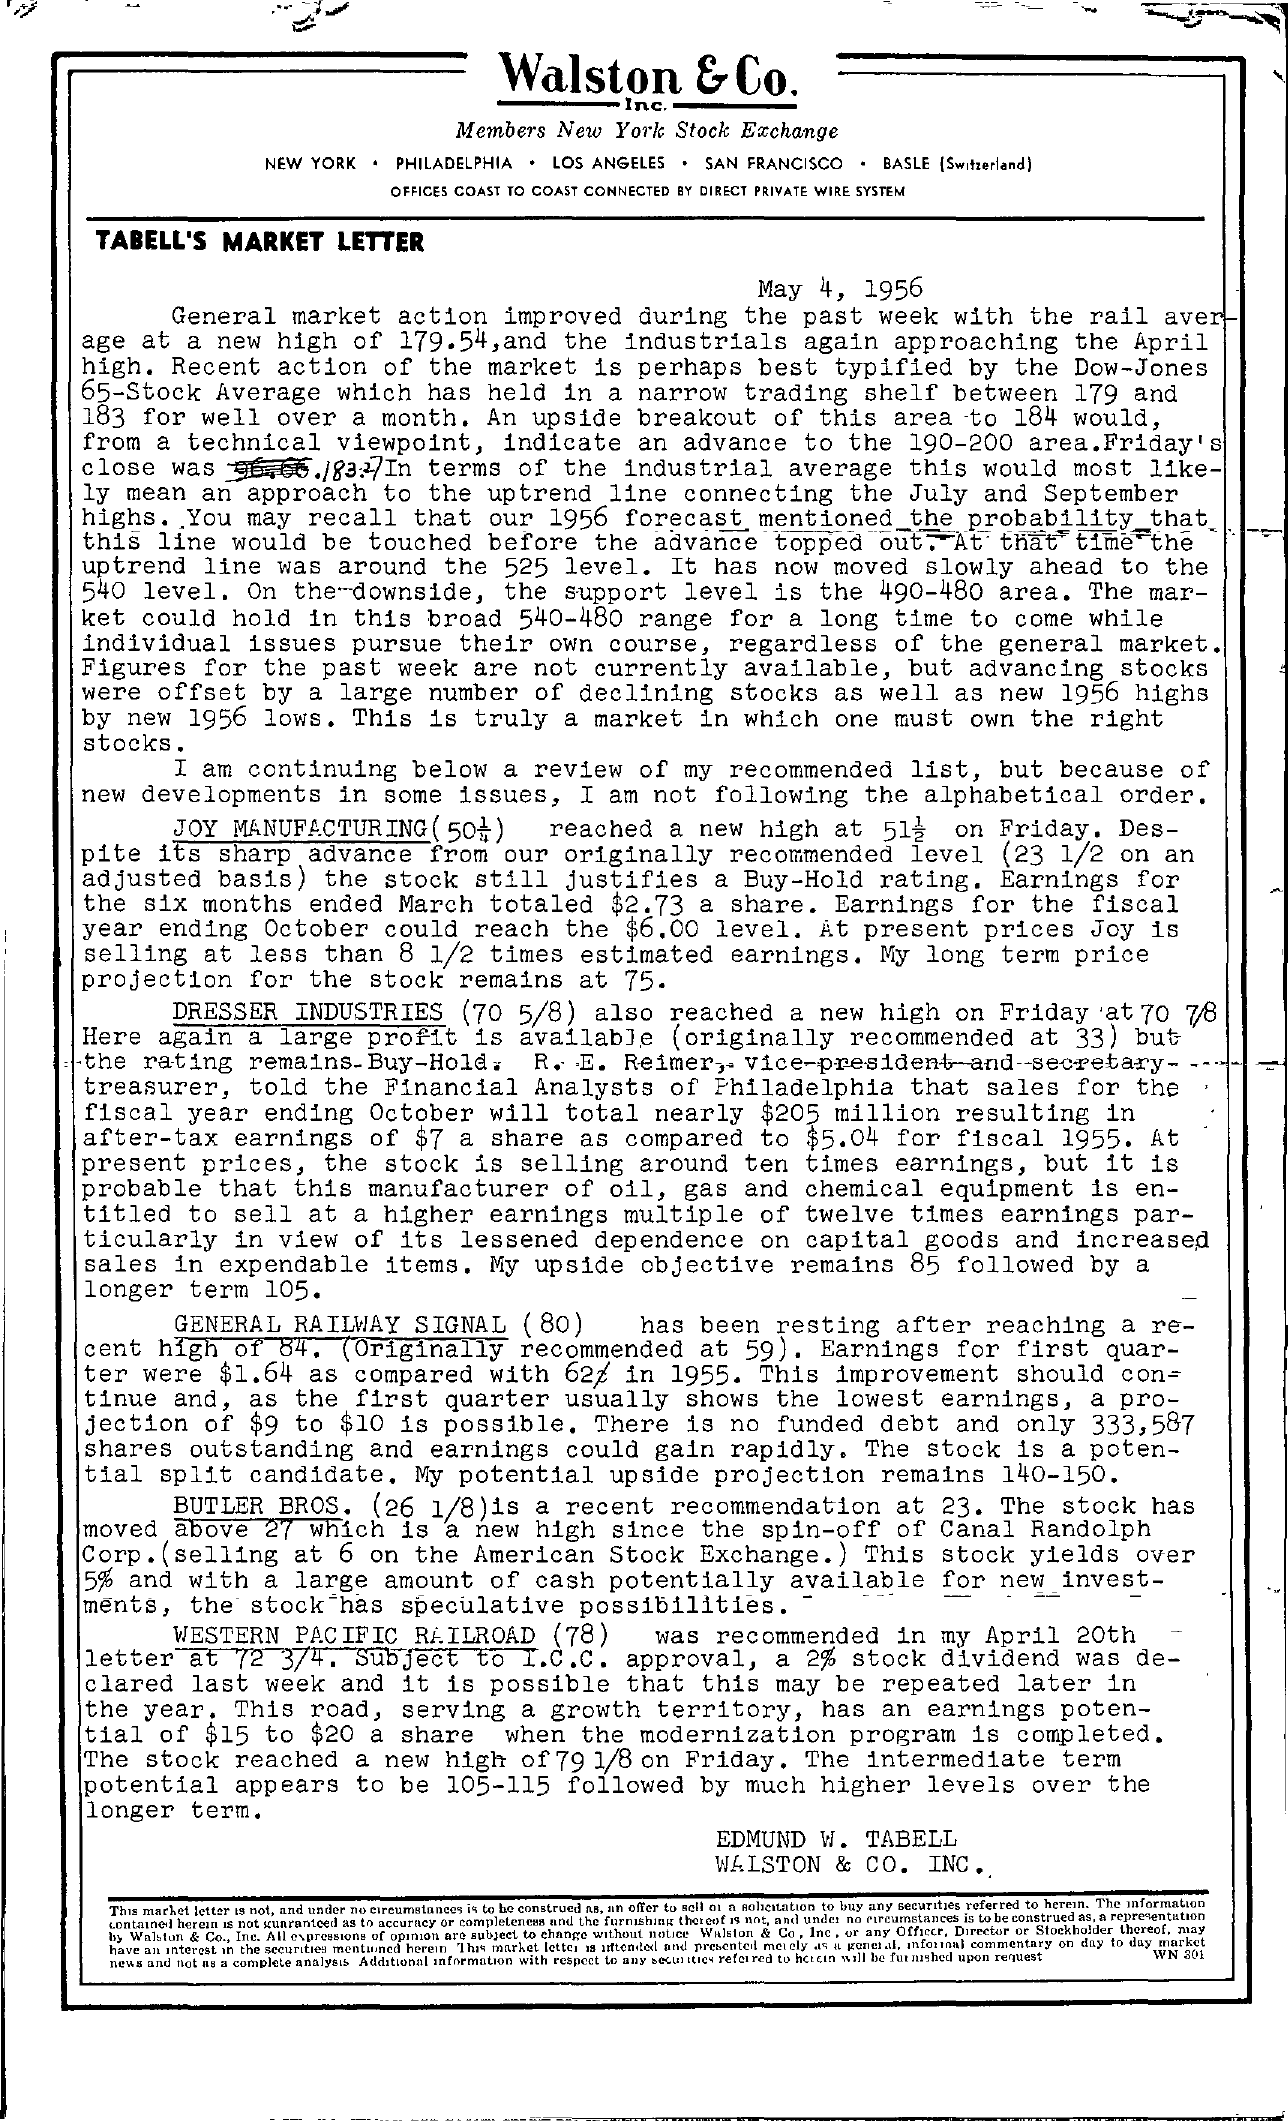 Tabell's Market Letter - May 04, 1956